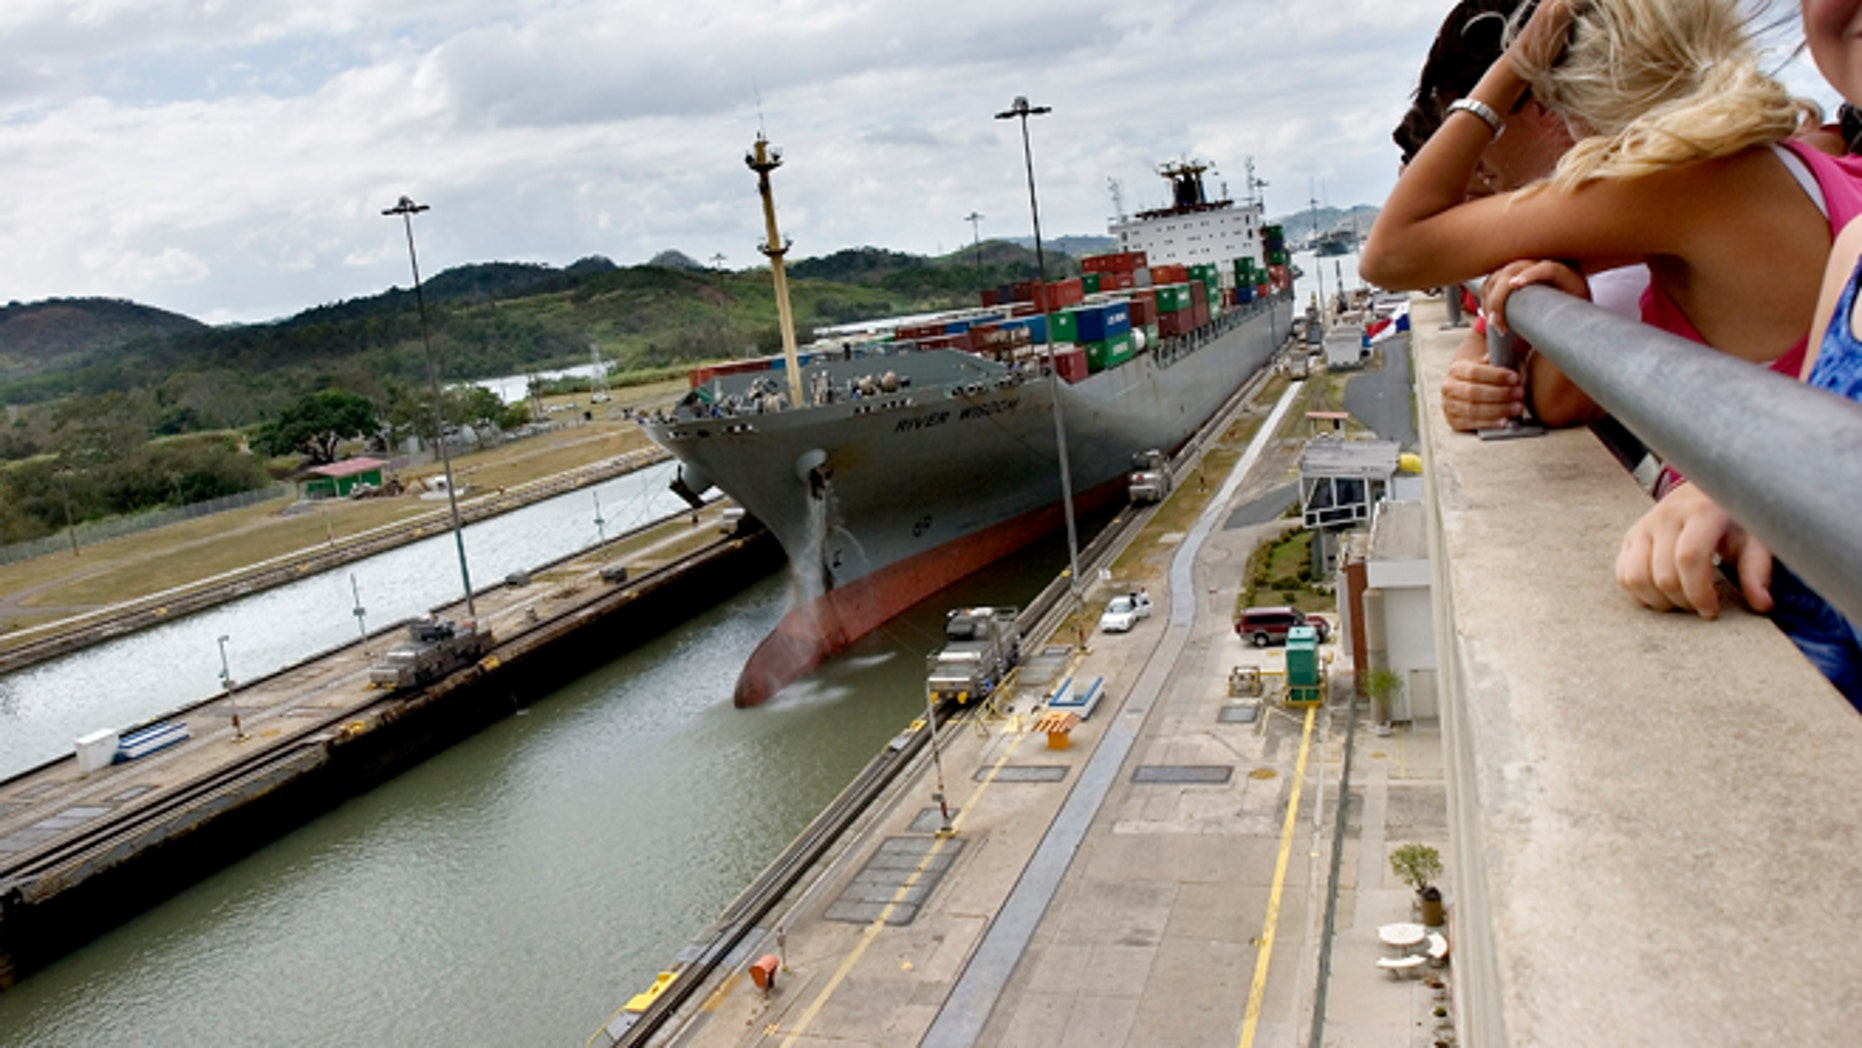 February 2005. Panama Canal, Panama.  (Photo by Javier Teniente/Cover/Getty Images)